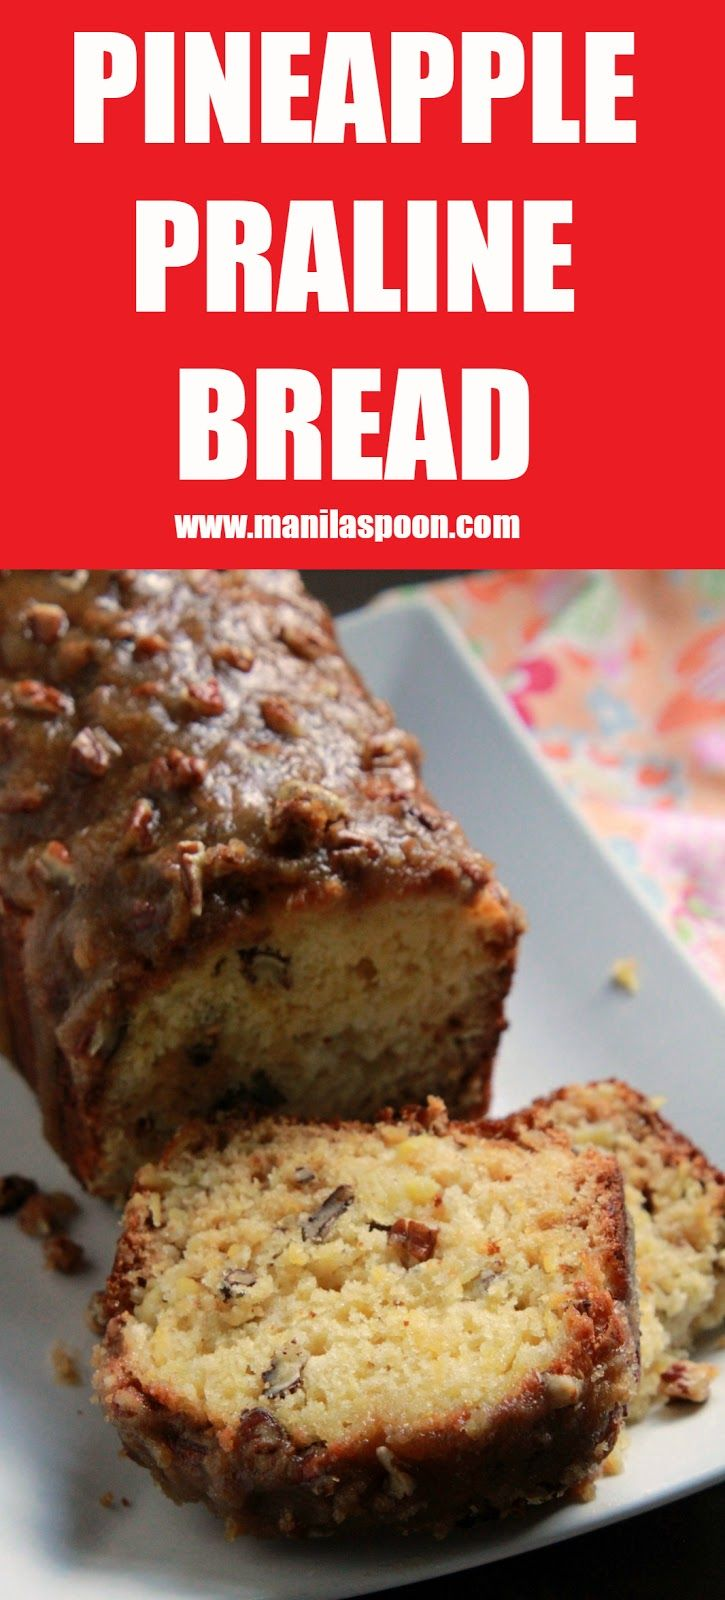 Crushed pineapple makes this Pineapple Praline bread super moist and flavorful. No butter or oil is ever used in the batter. The crunchy pecan topping makes it even more scrumptious.